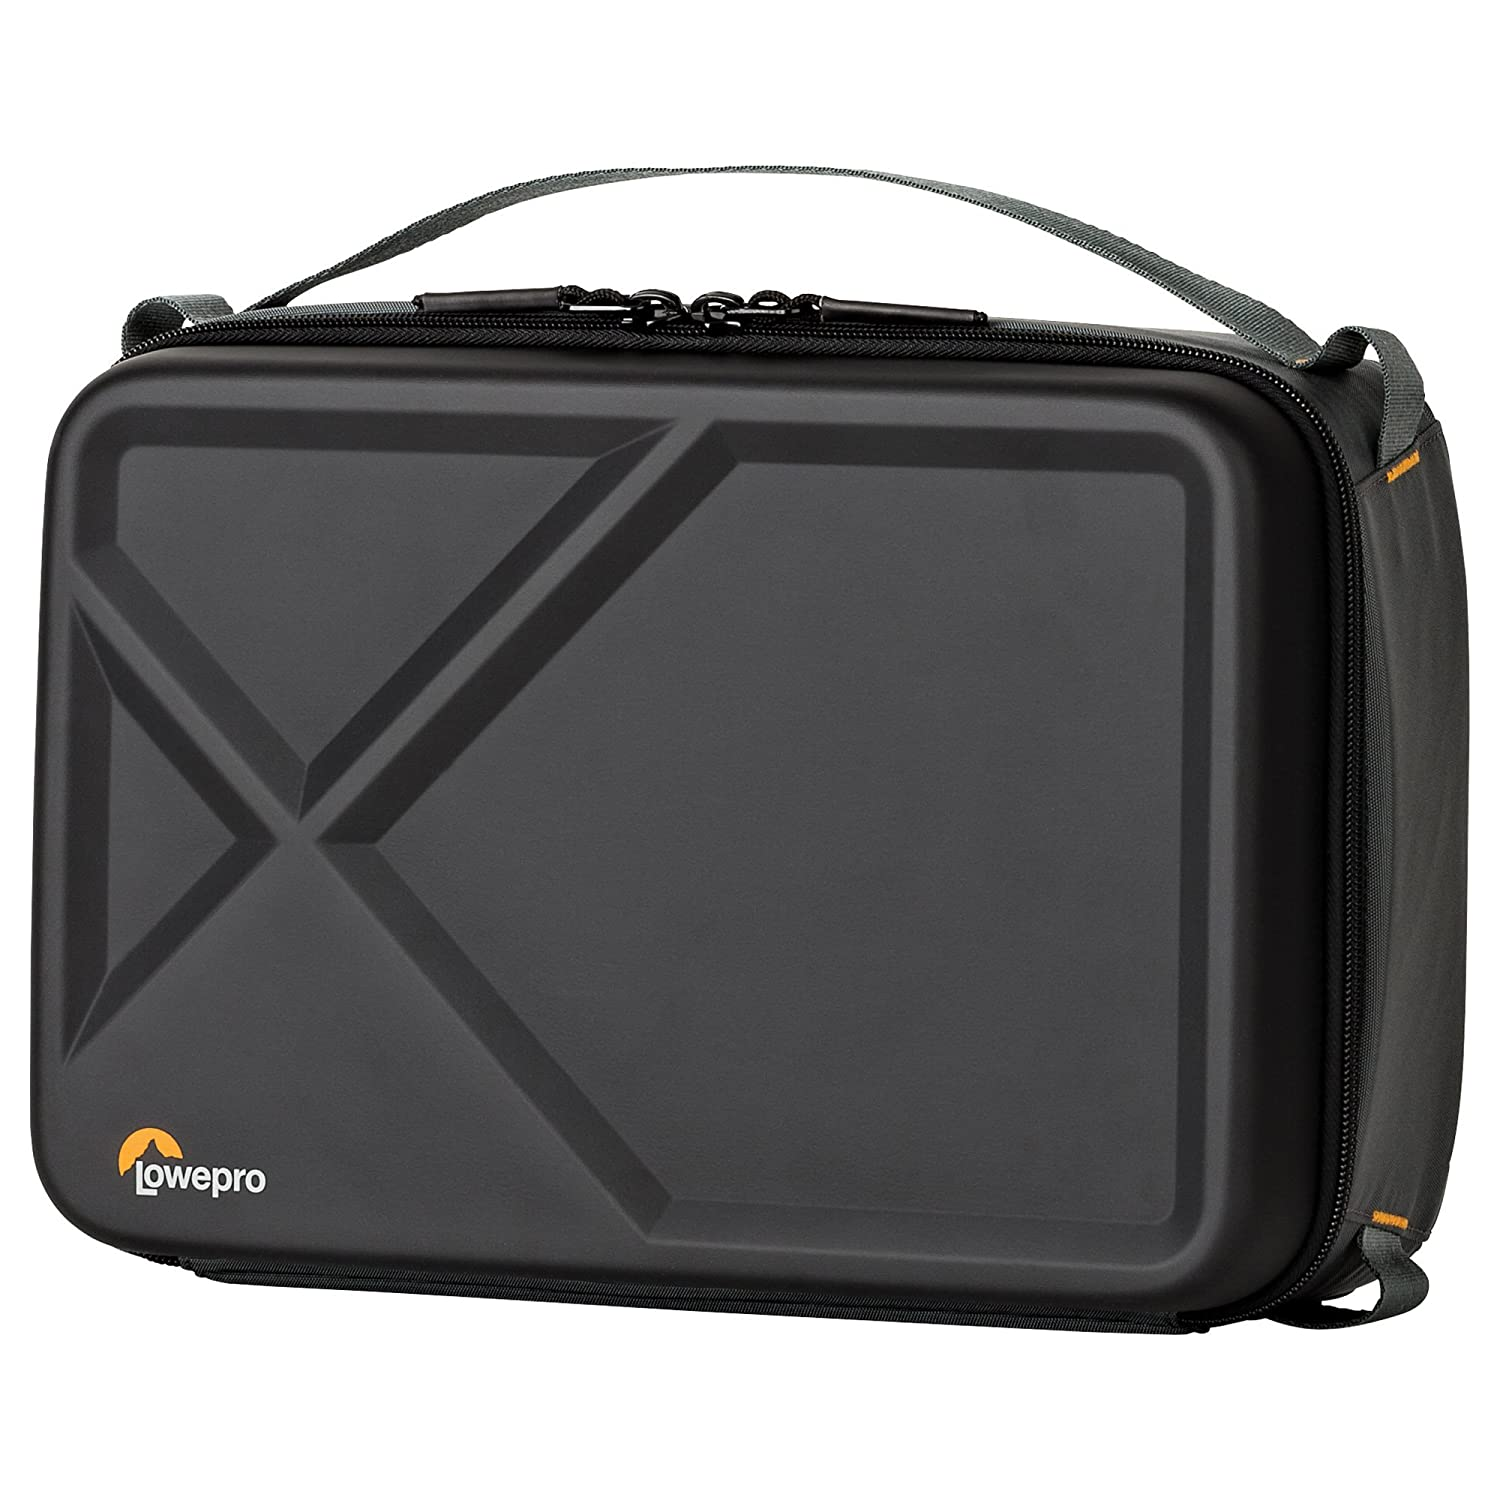 Amazon Lowepro QuadGuard TX Case Flexible Carrying Case for